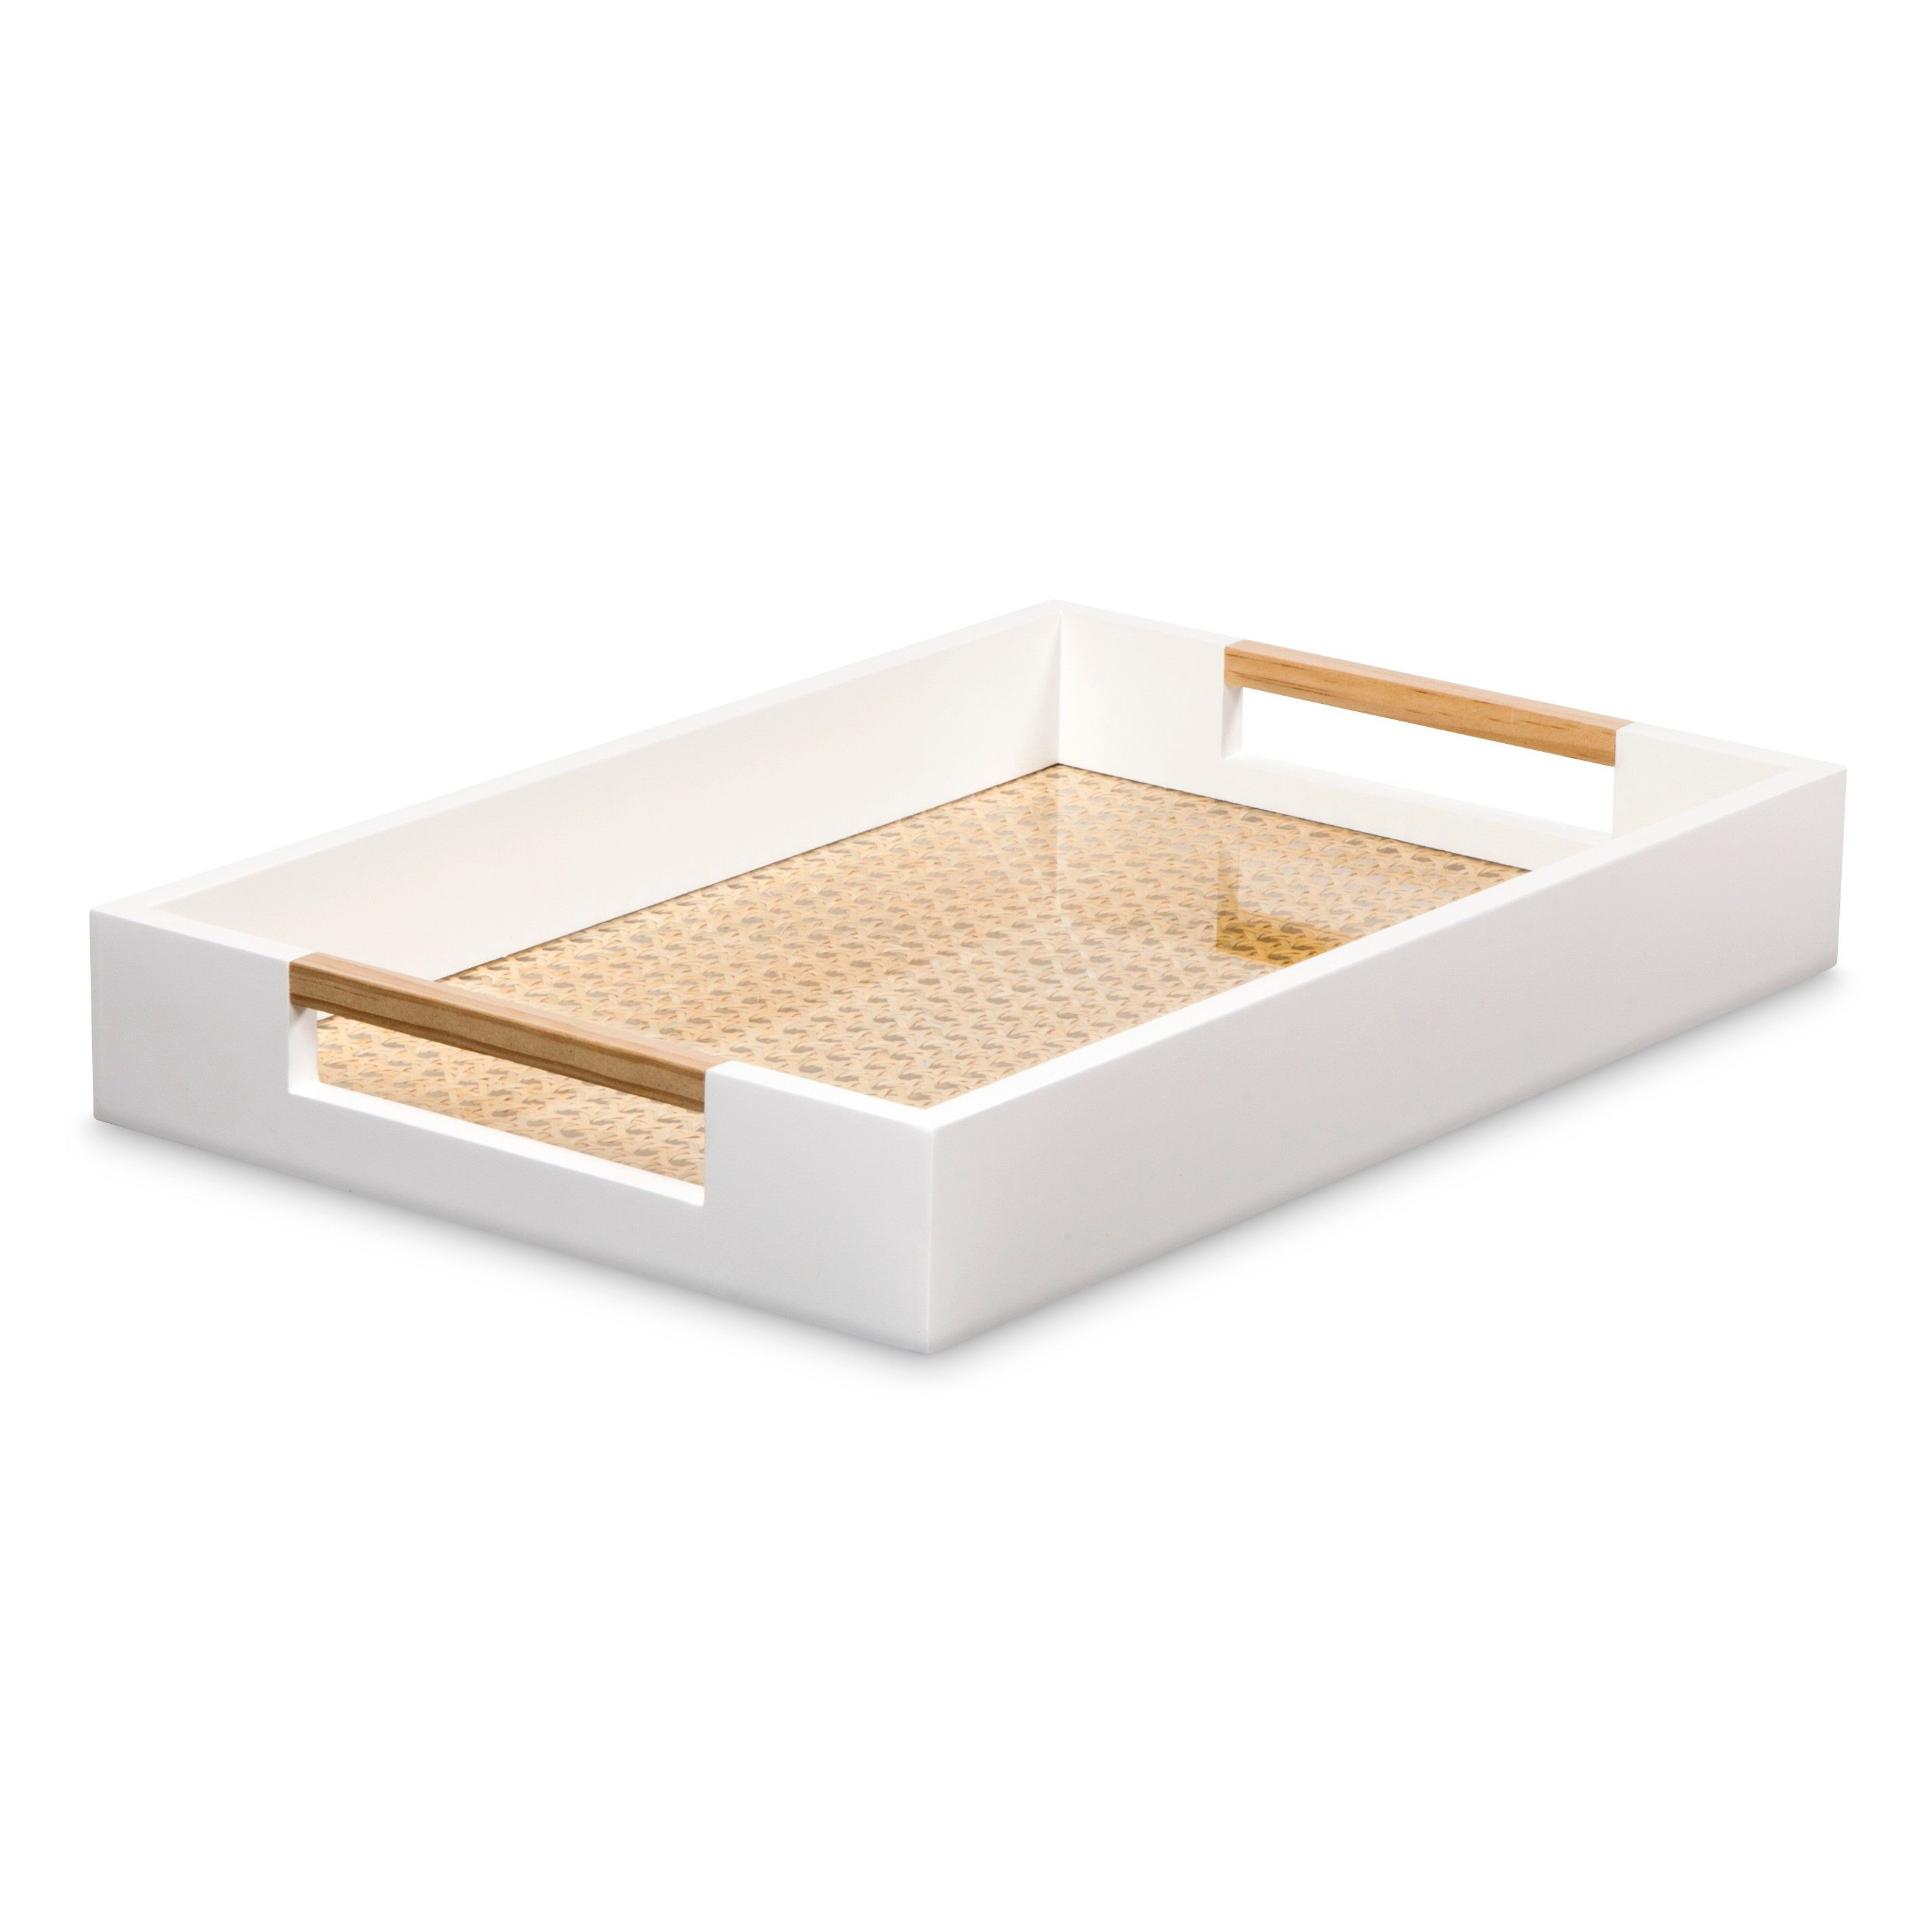 White Decorative Tray Threshold™ Decorative Tray With Cane Detail  White  Target  Bed